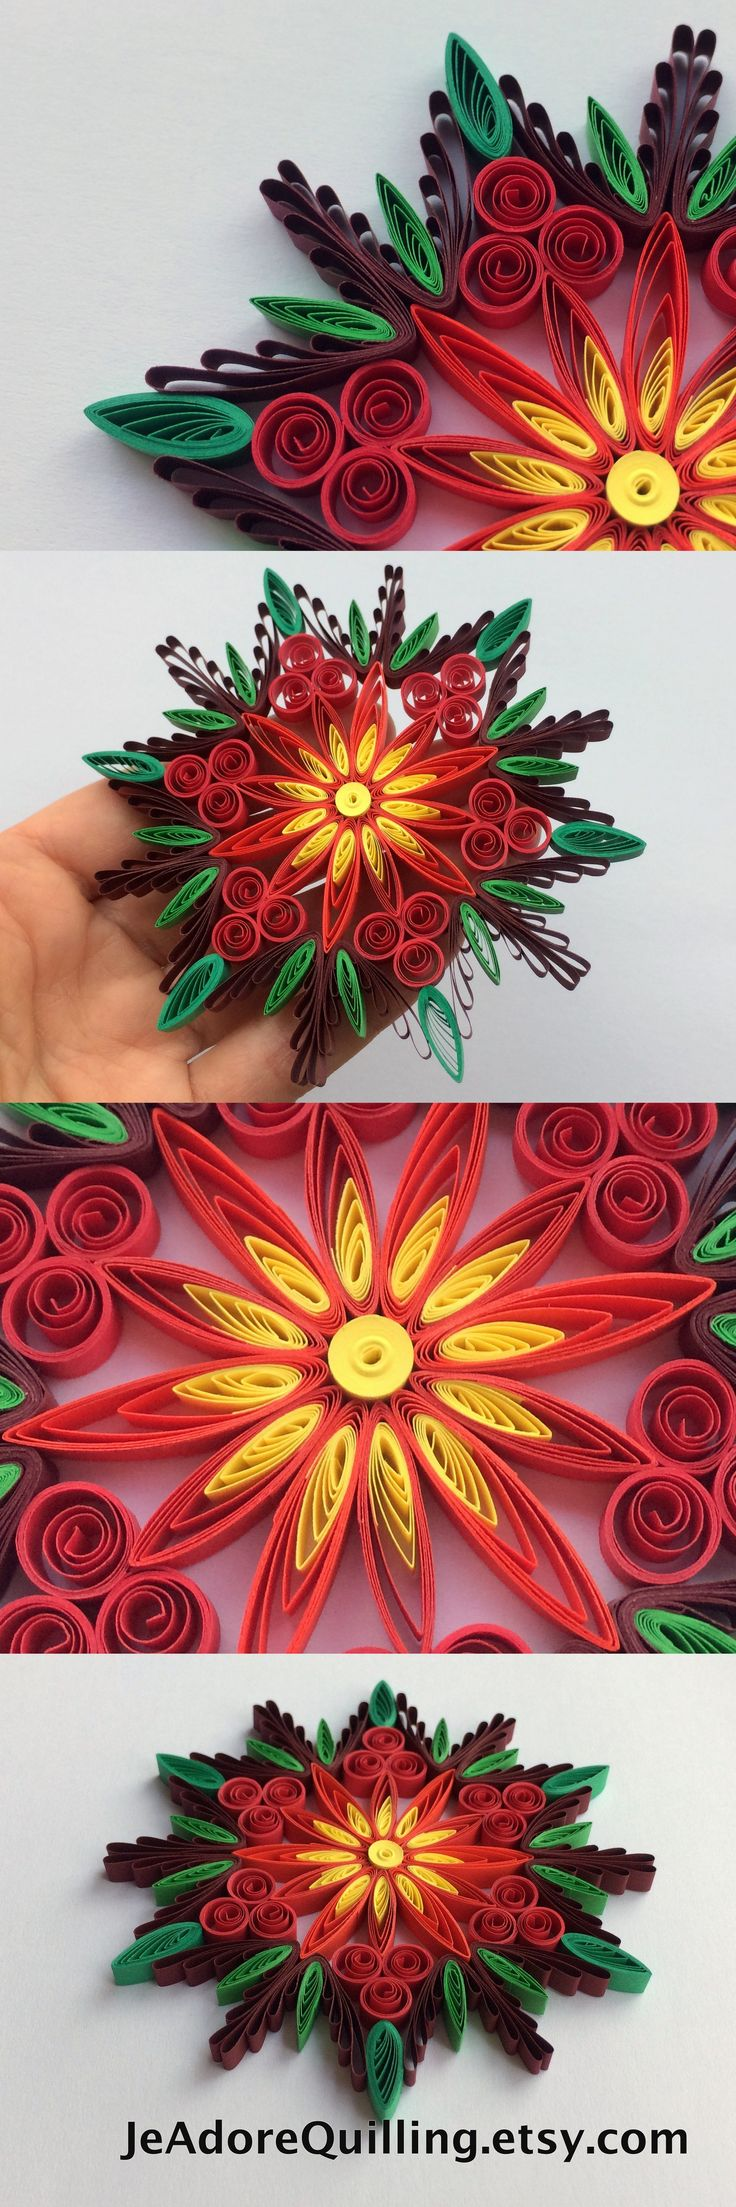 Snowflake Poinsettia Red Green Christmas Tree Decoration Winter Ornaments Gifts Toppers Fillers Office Corporate Paper Quilling Quilled Art